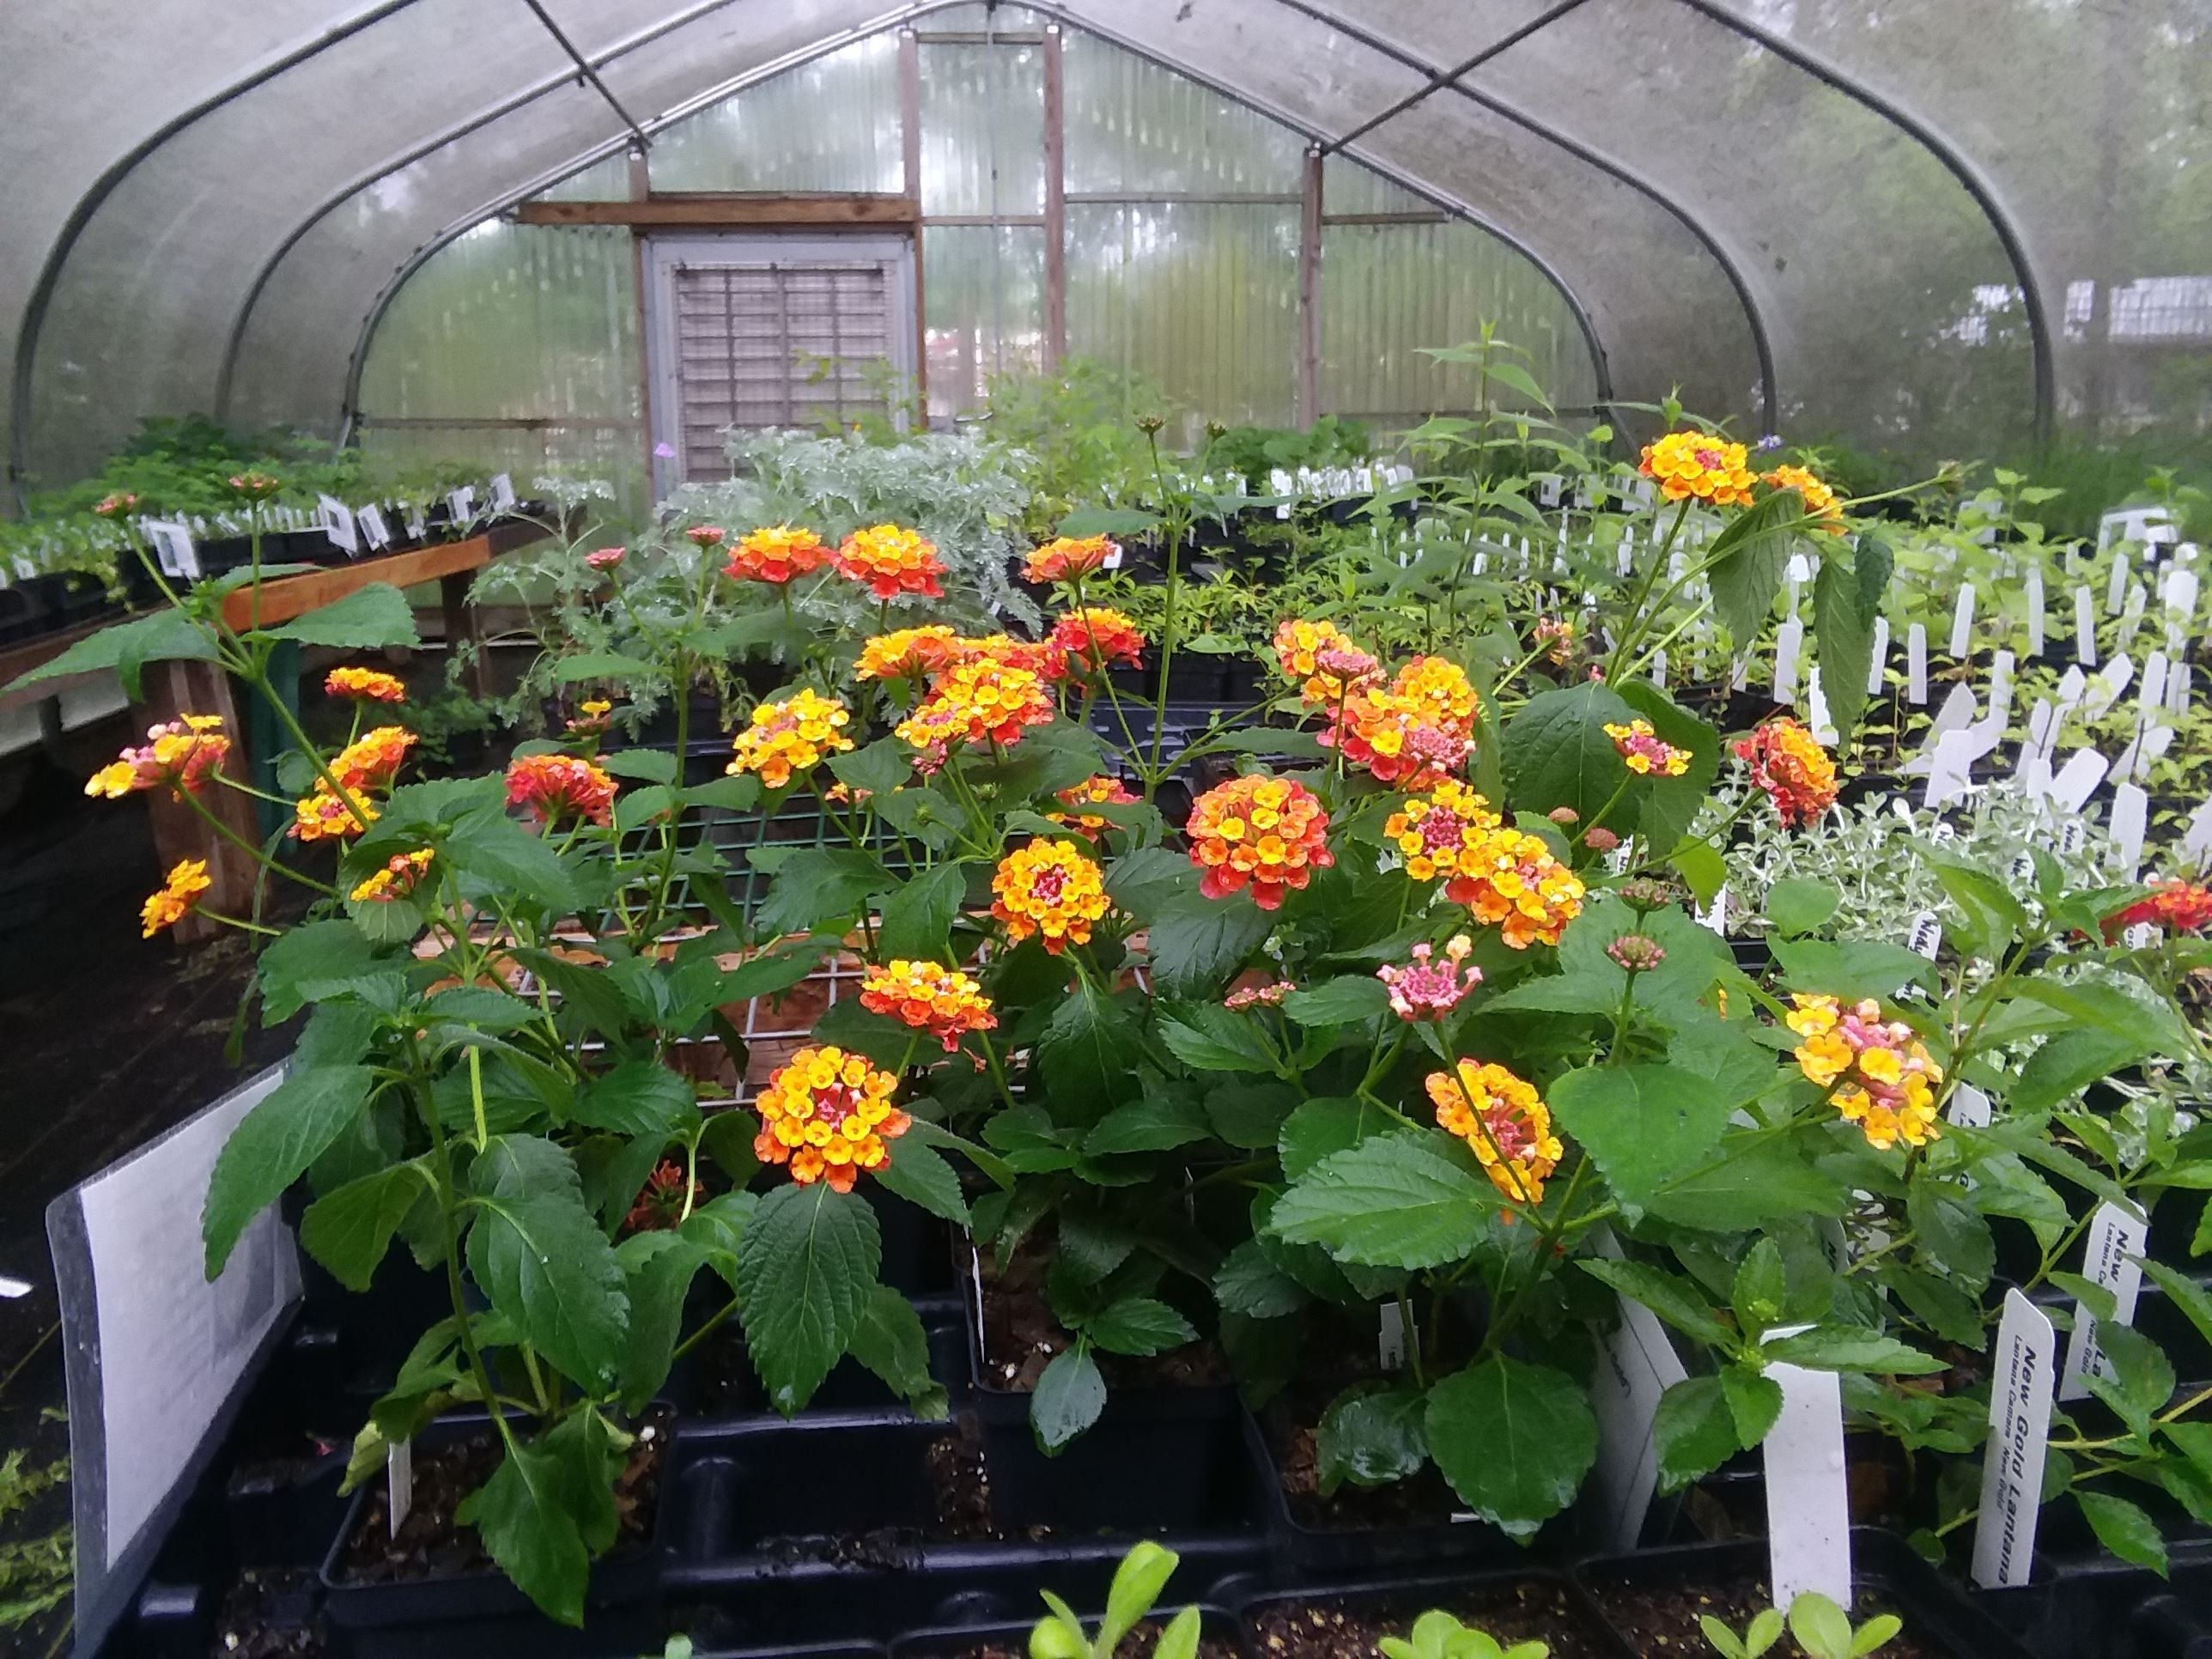 Lantana plants in a greenhouse